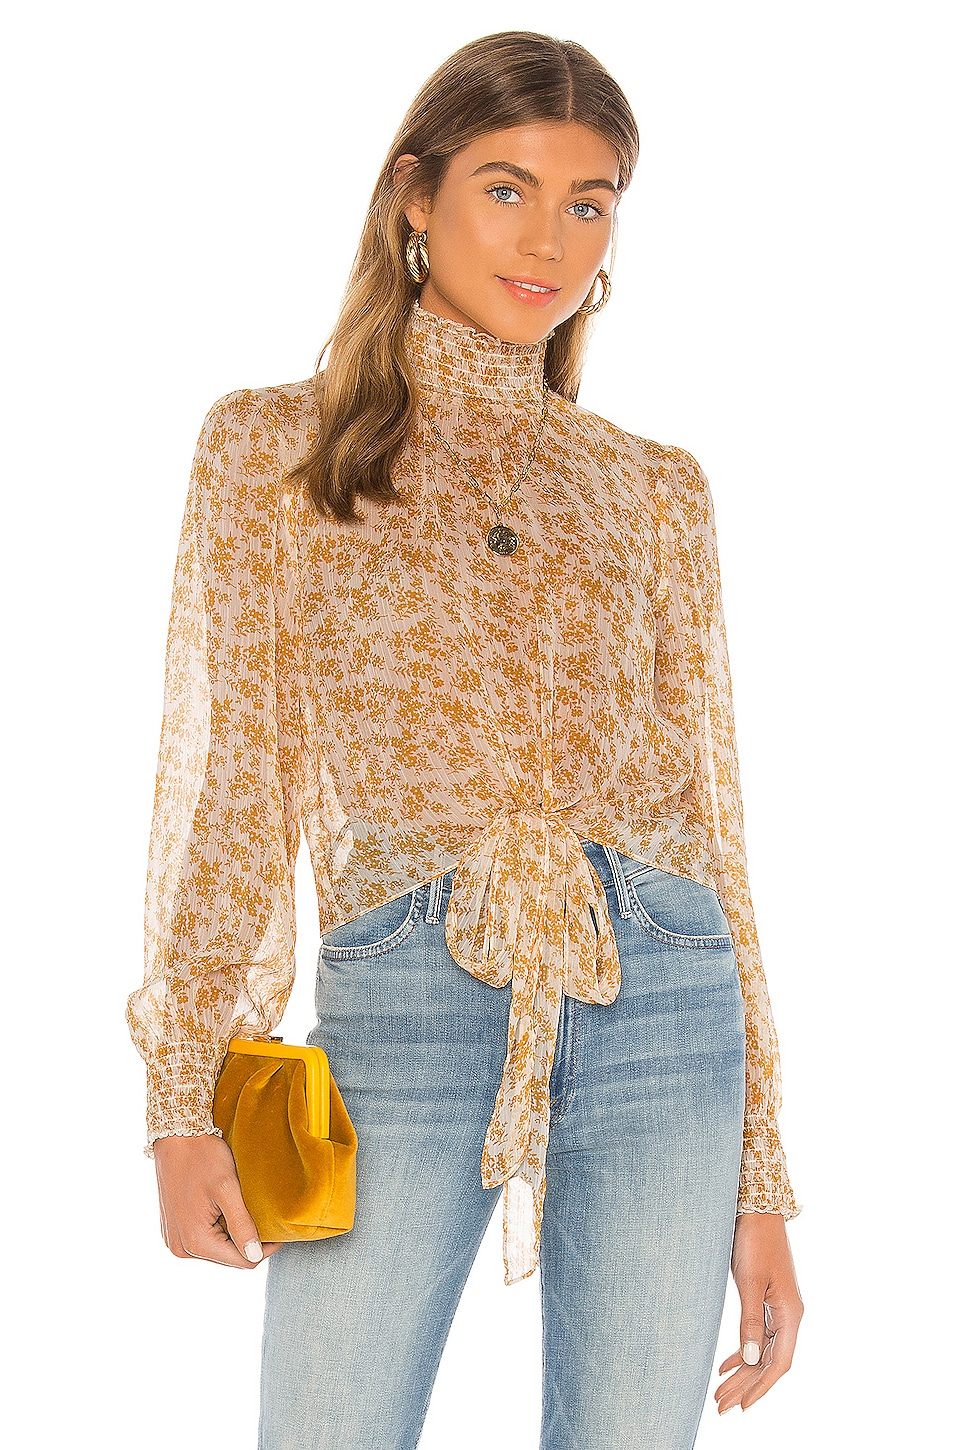 Lana High Neck Blouse             MINKPINK                                                                                                       CA$ 98.11 4